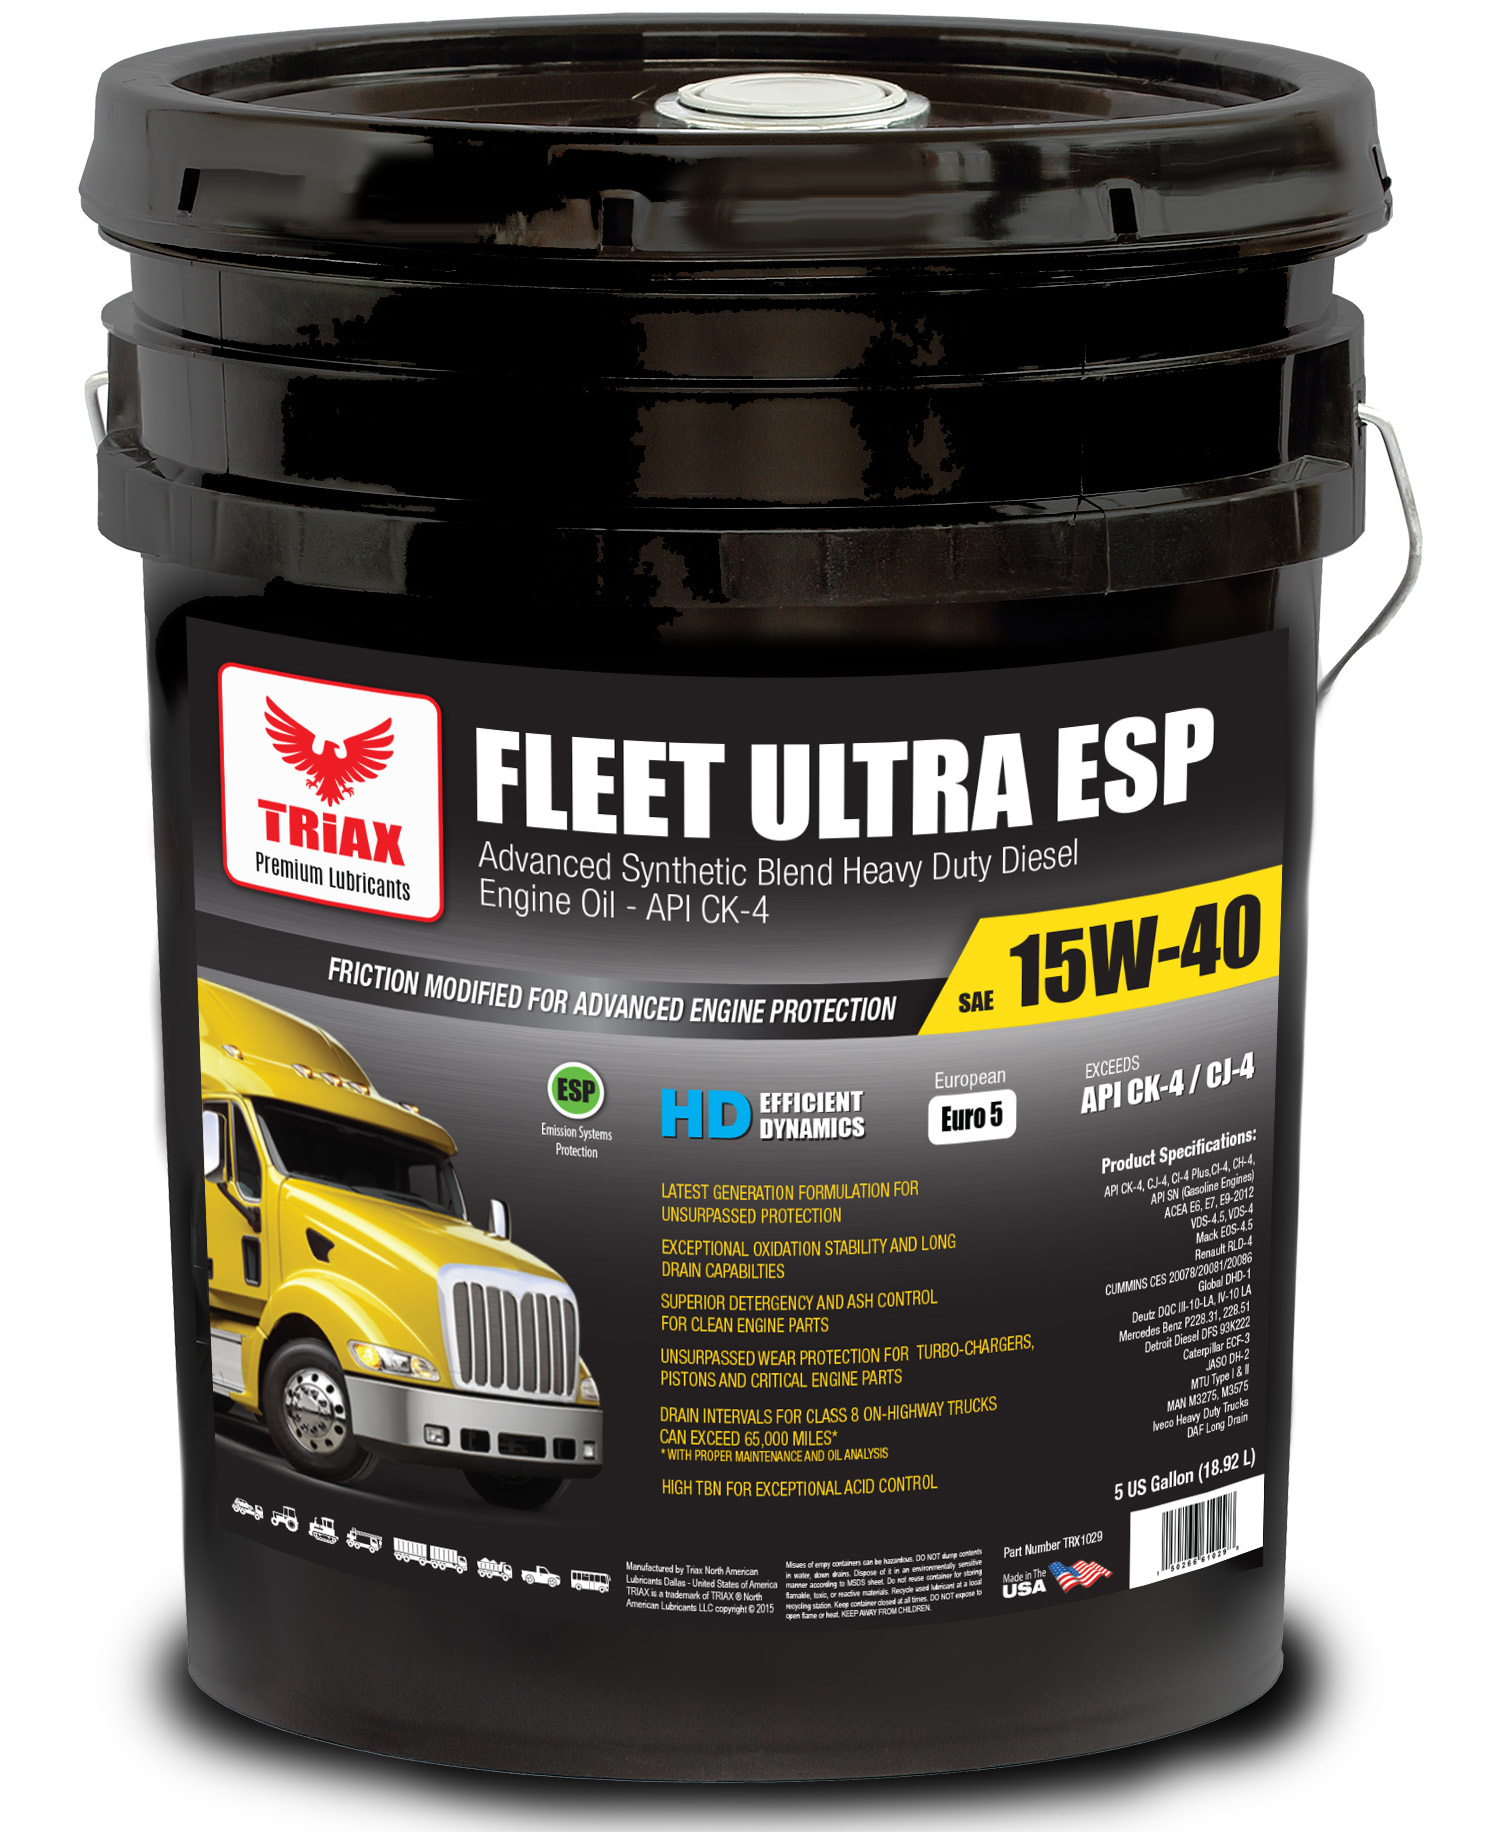 TRIAX Fleet Ultra ESP 15W-40 Synthetic Blend - CK-4 / VDS-4 Euro V